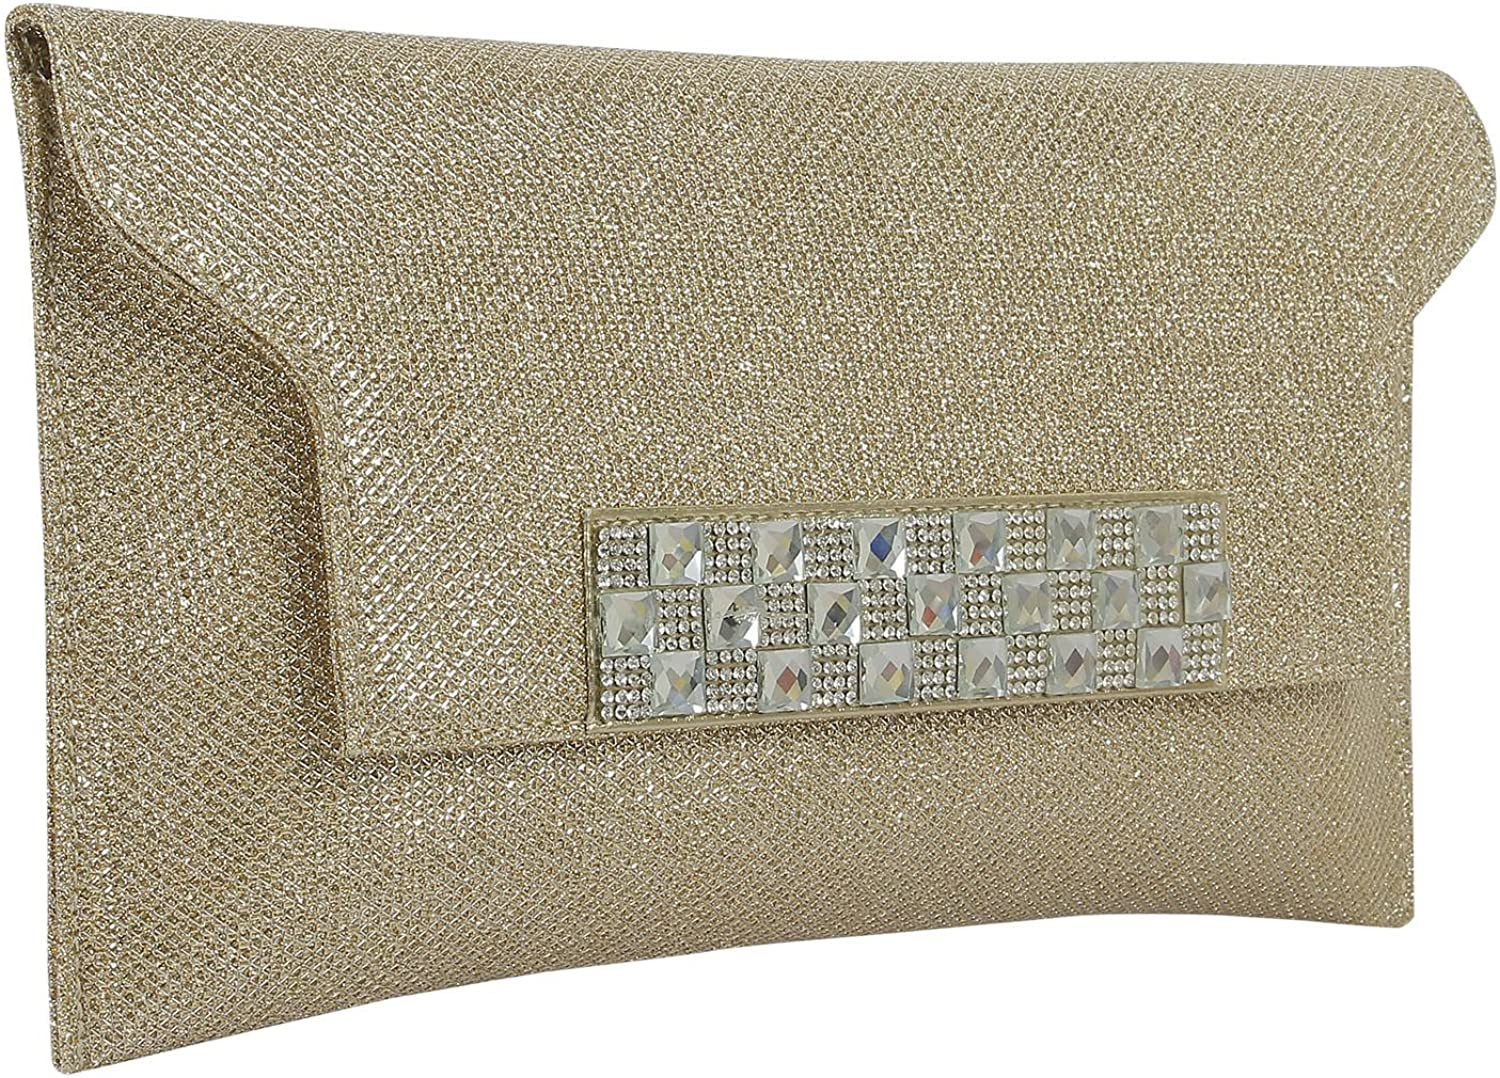 { Extra 10% Discount } Purse Collection Casual pink gold Indian Clutch Beautiful Decorated By Stone